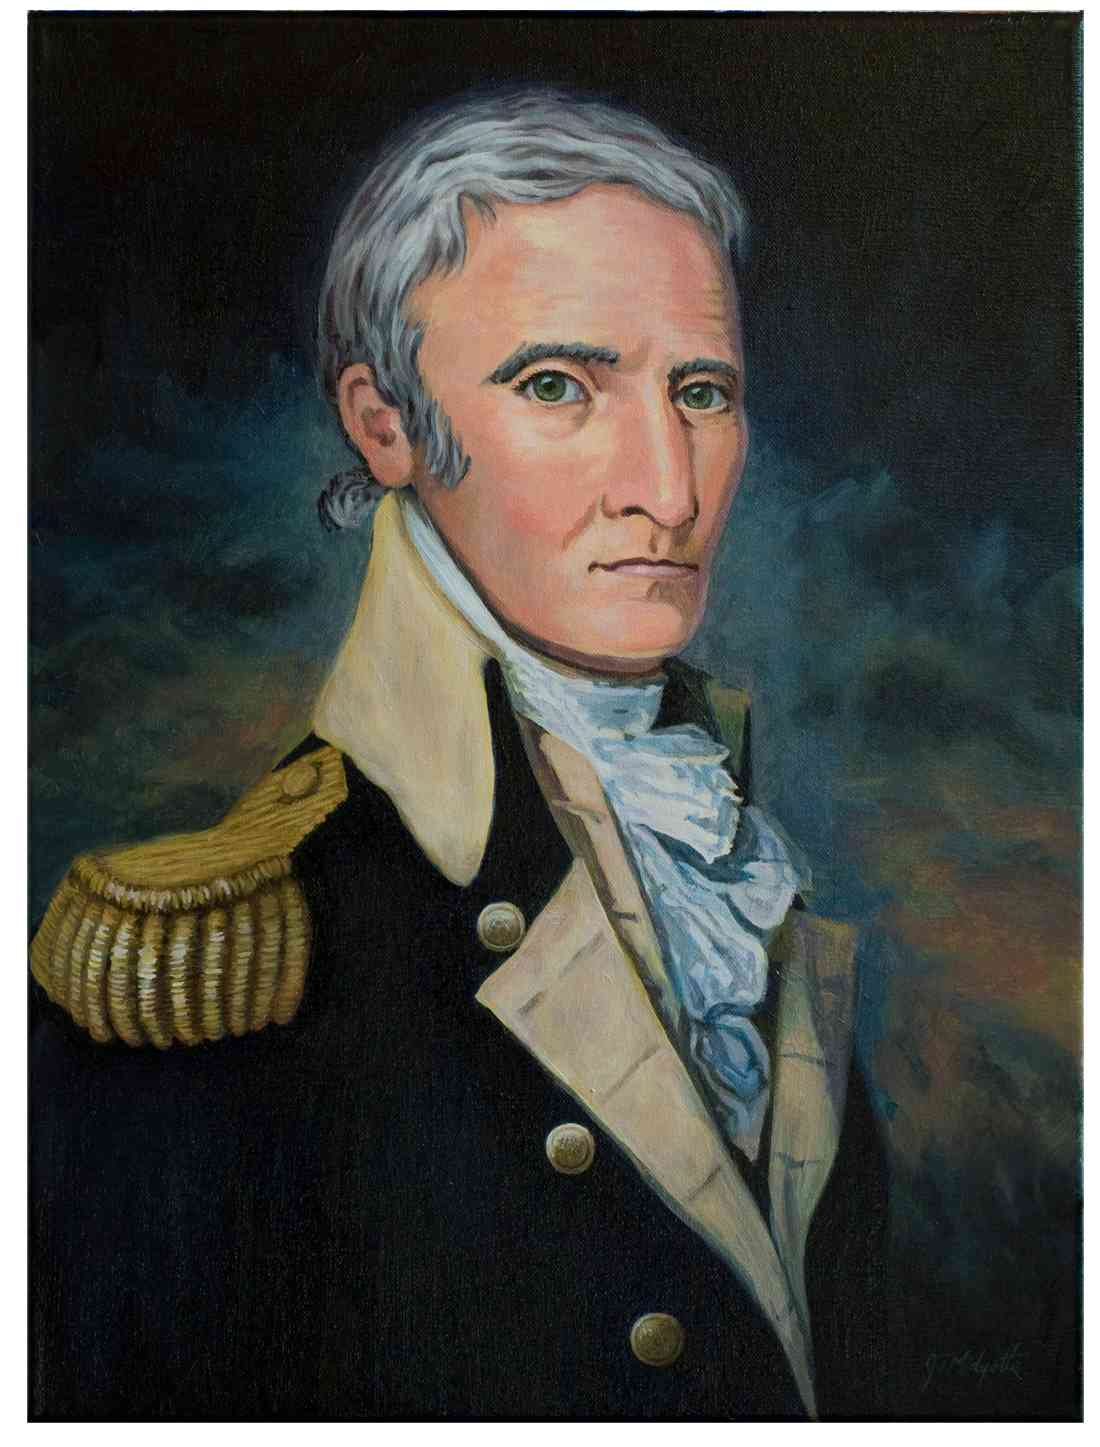 Revolutionary War portrait